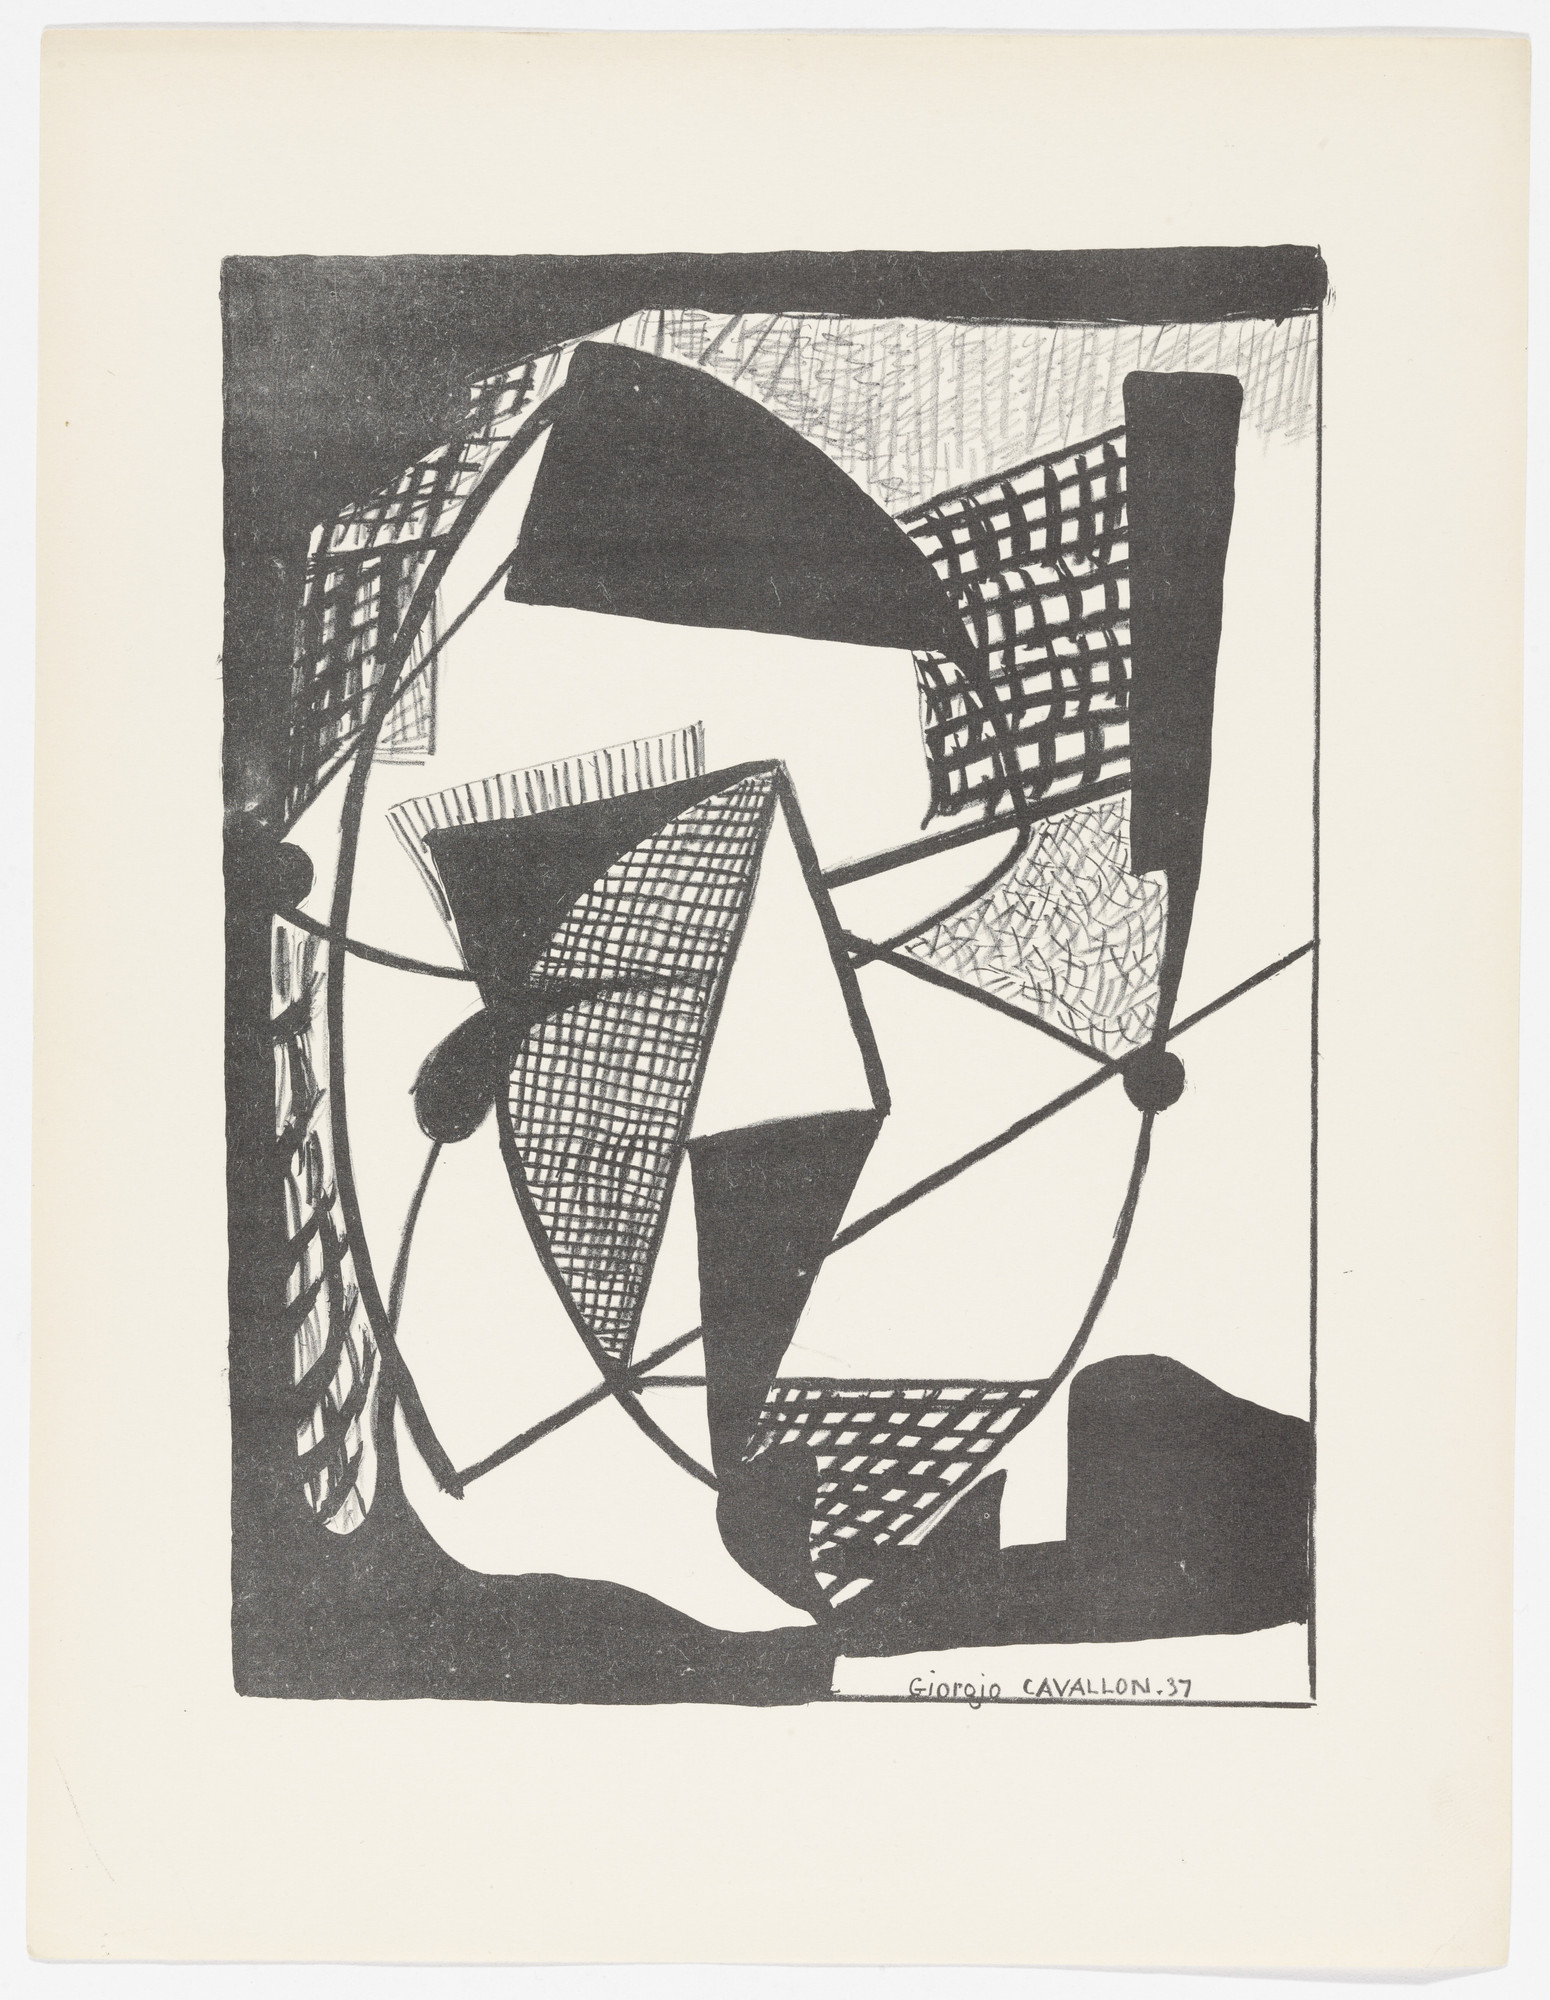 Giorgio Cavallon. Untitled from American Abstract Artists. 1937